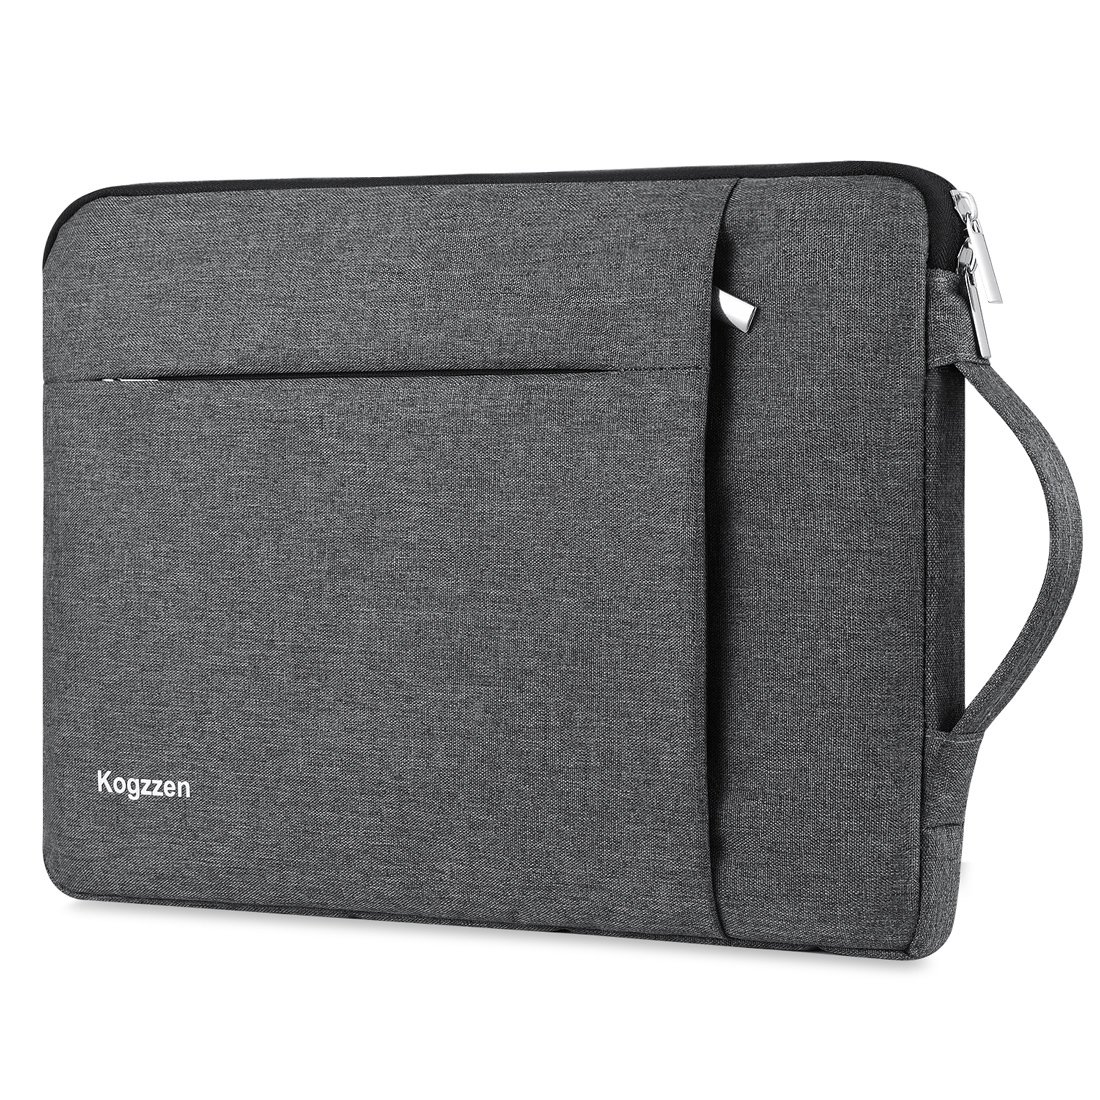 Kogzzen 13-13.5 Inch Laptop Sleeve Shockproof Lightweight Case Carrying Bag Compatible with MacBook Pro 13 inch/MacBook Air 13.3/ Dell XPS 13/ Surface Book 2 13.5/ Surface Laptop/iPad Pro 12.9 - Gray by Kogzzen (Image #1)